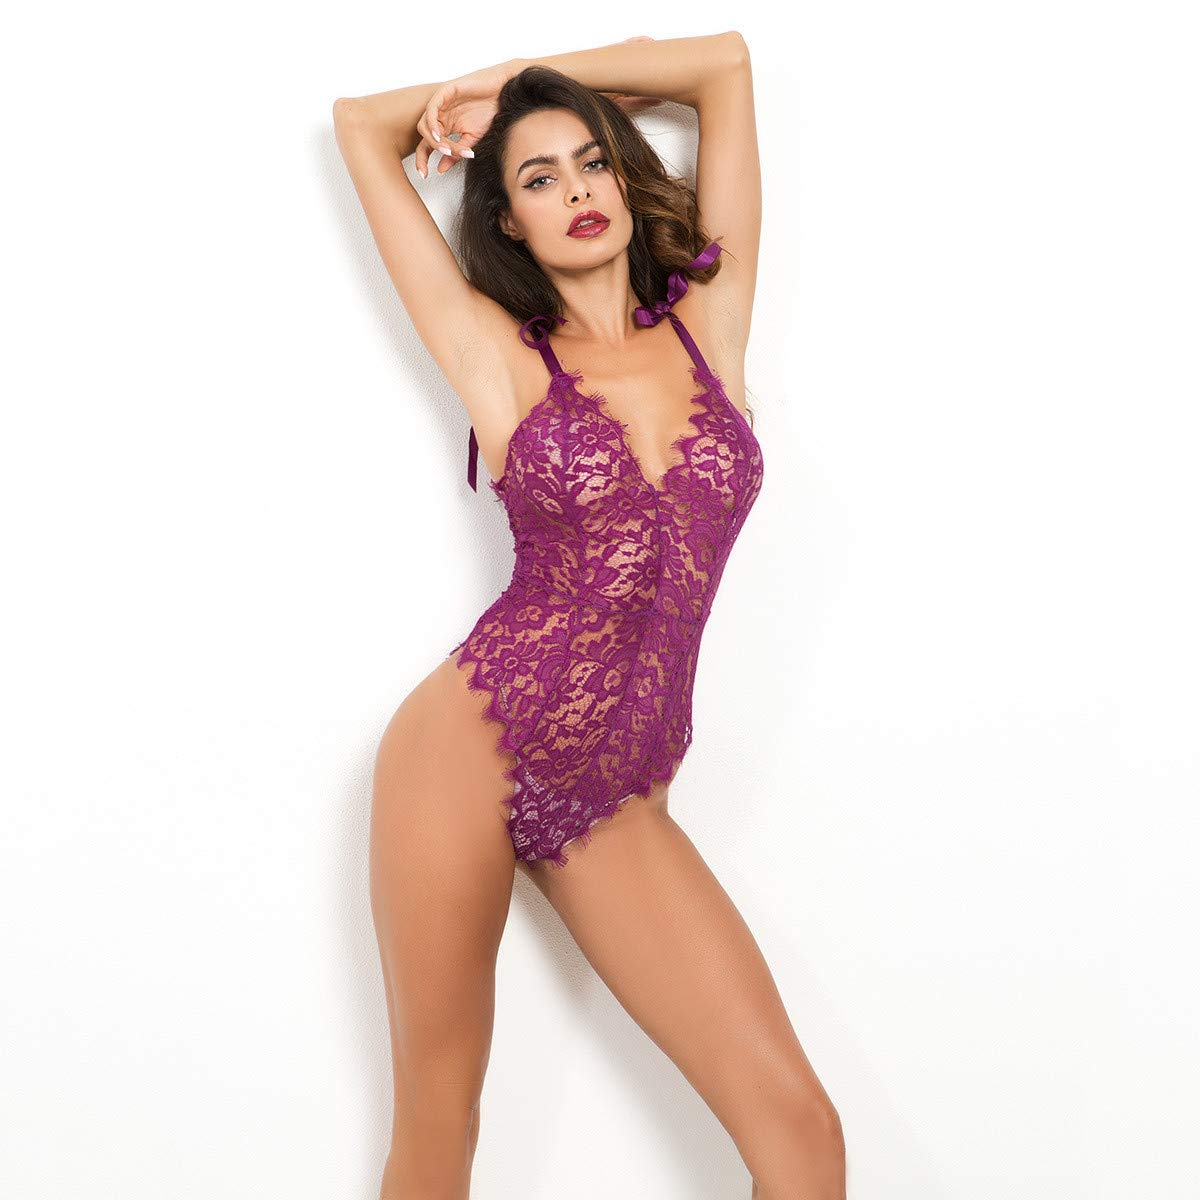 Amazon.com: Lingerie,Clearence Womens Lingerie KpopBaby Lace Sexy Nightgown Passion Deep V Halter Babydoll G-String Dress Embroidery Bras Set: Clothing